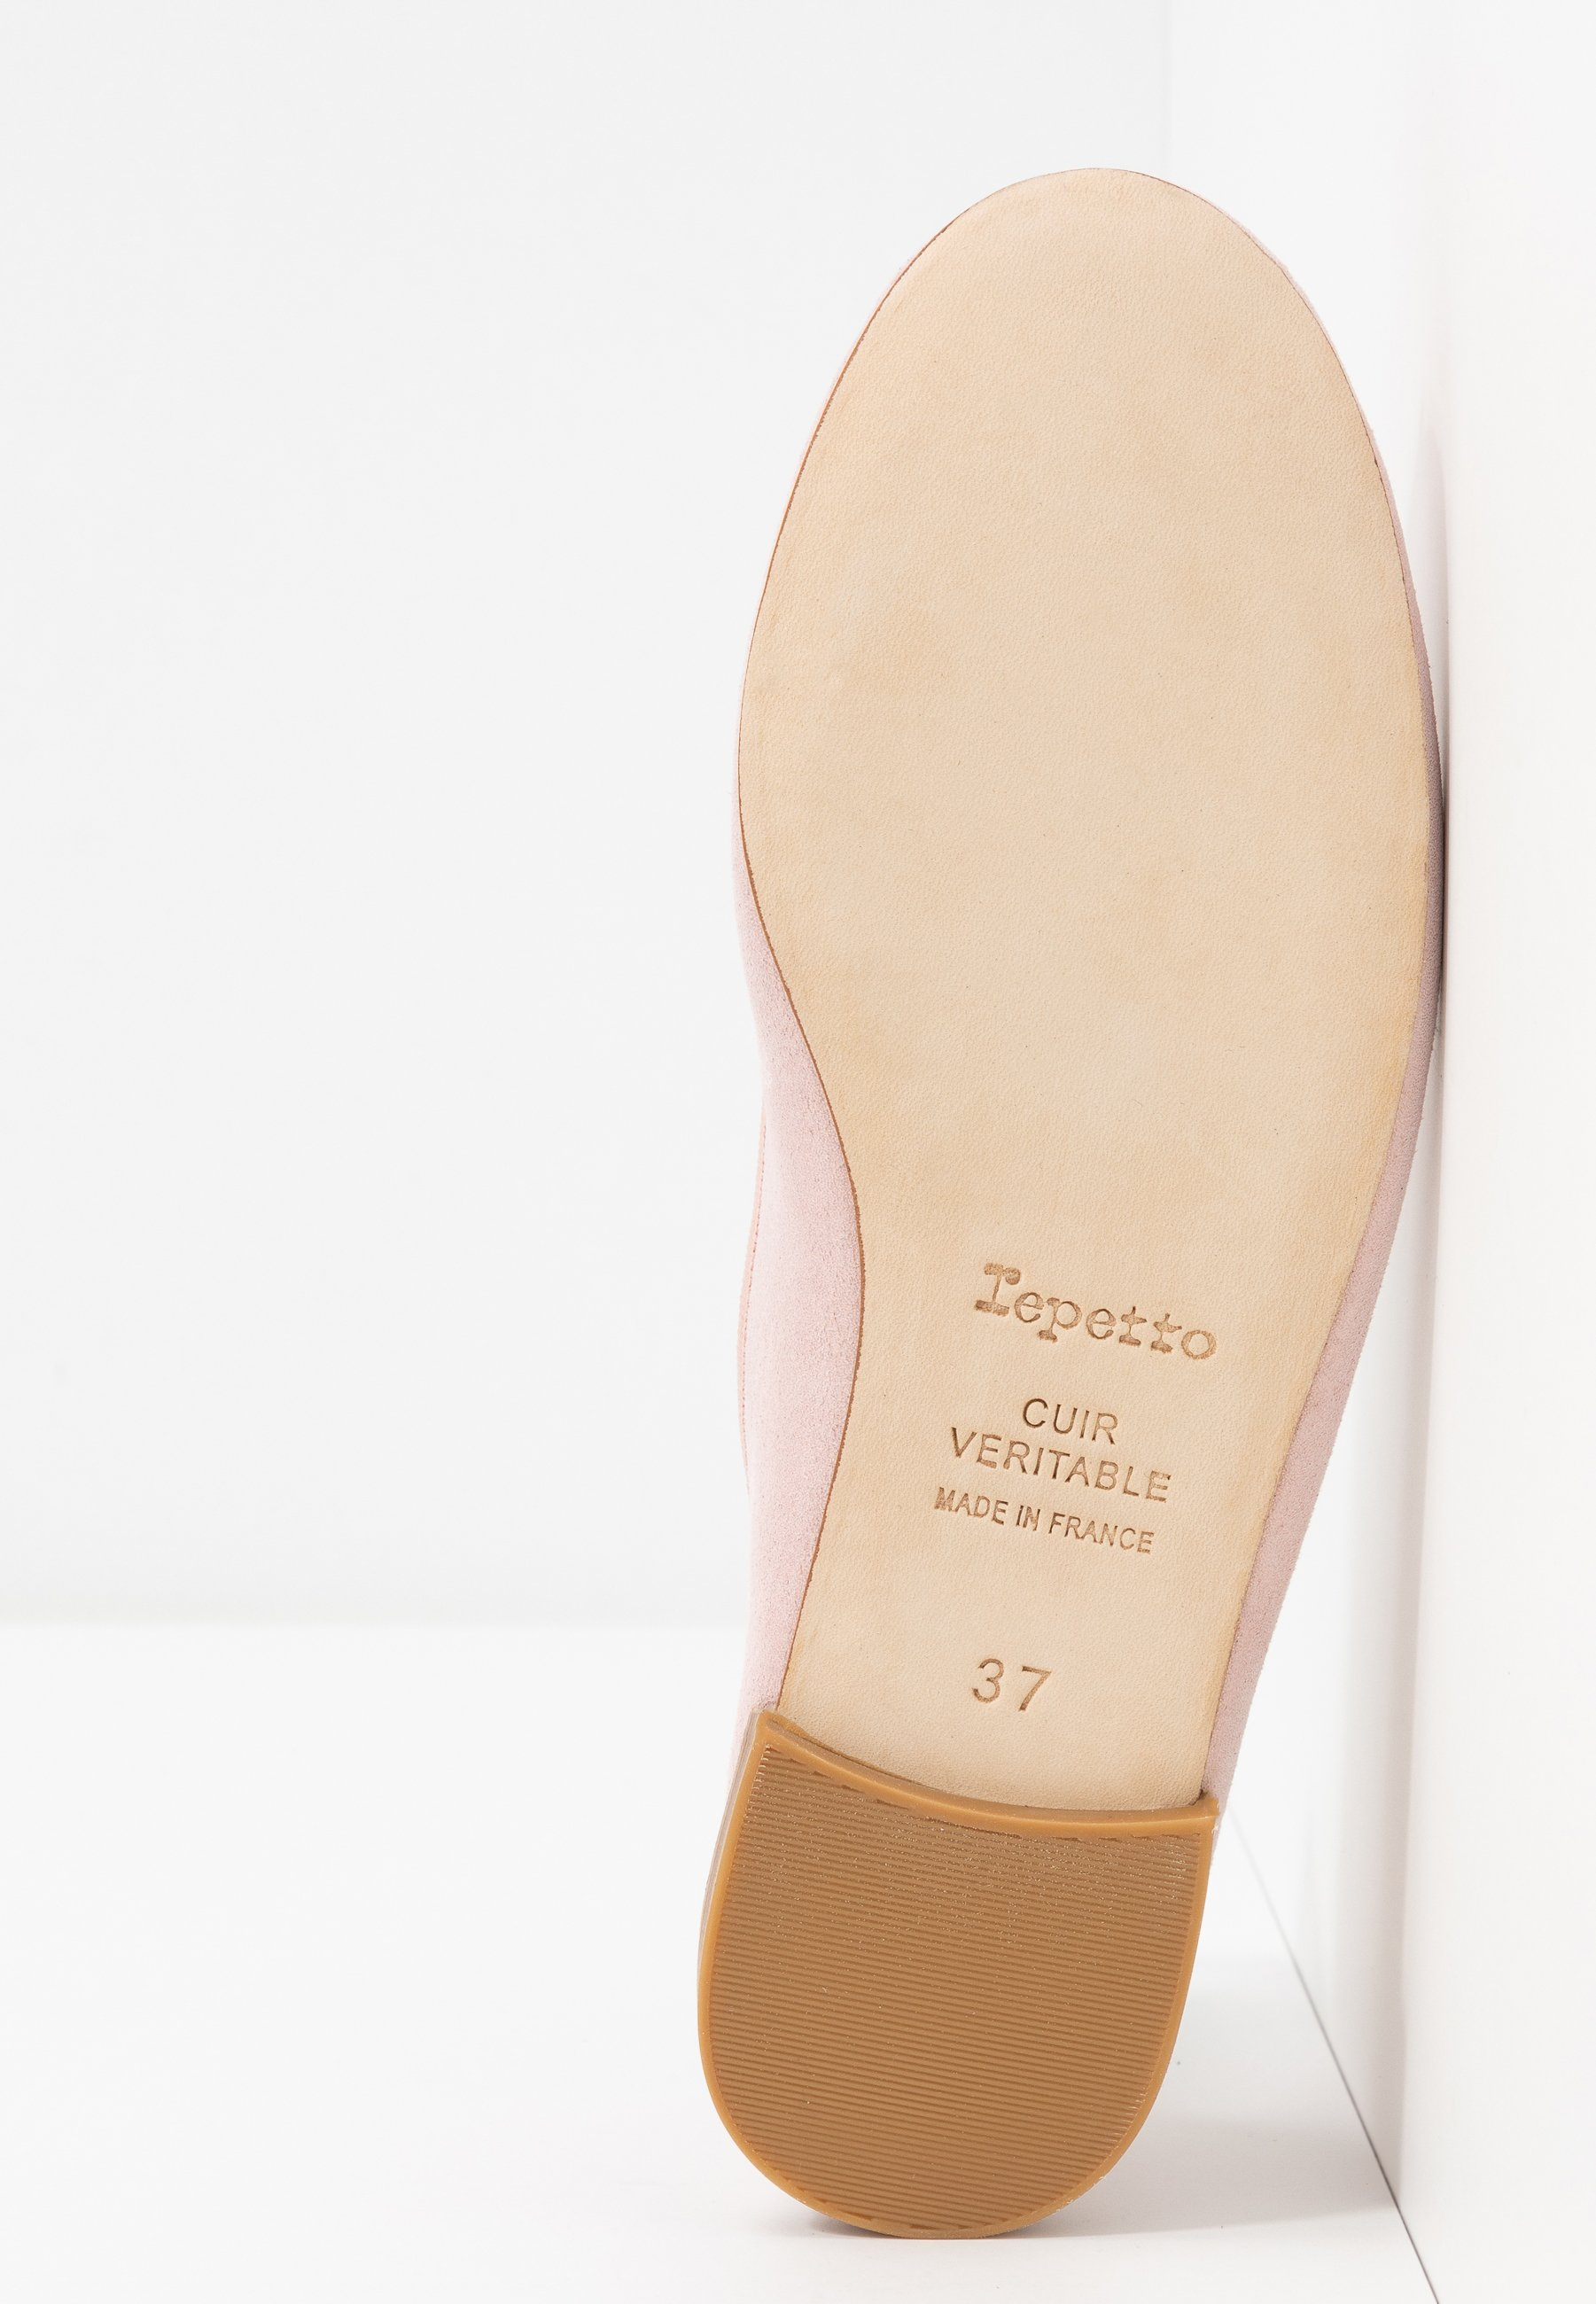 Limited New Cheapest Repetto CENDRILLON - Ballet pumps - baby | women's shoes 2020 cZMEe